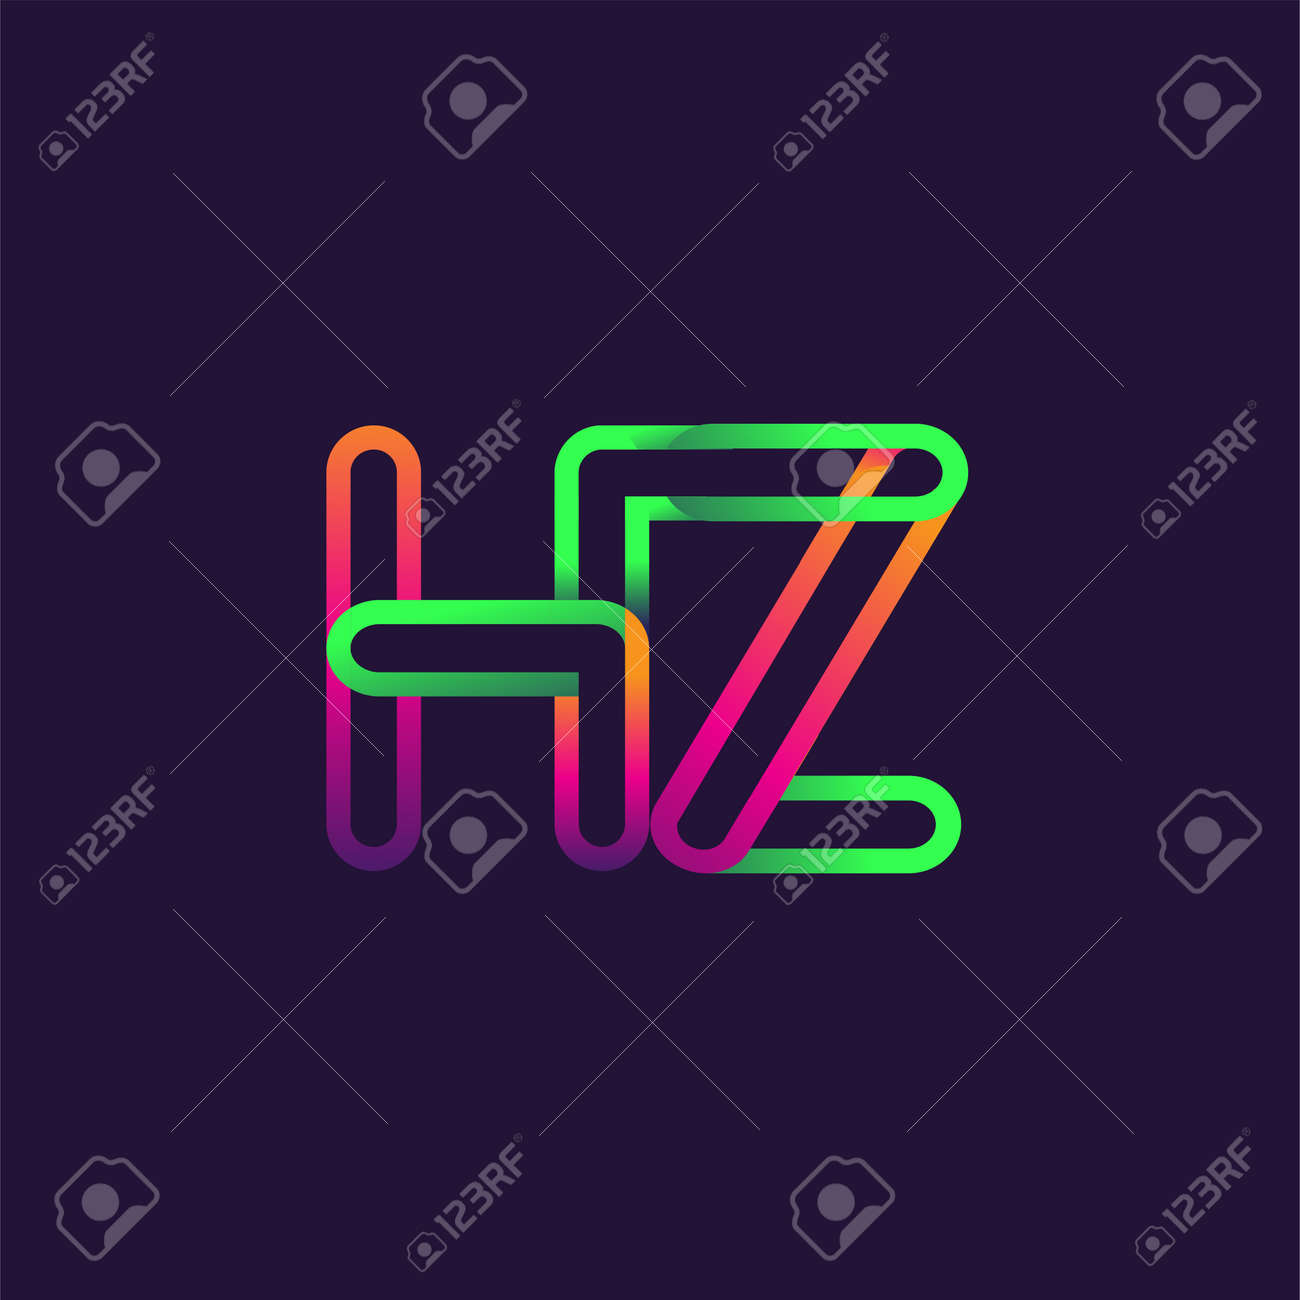 initial logo letter HZ, linked outline rounded logo, colorful initial logo for business name and company identity. - 150656616